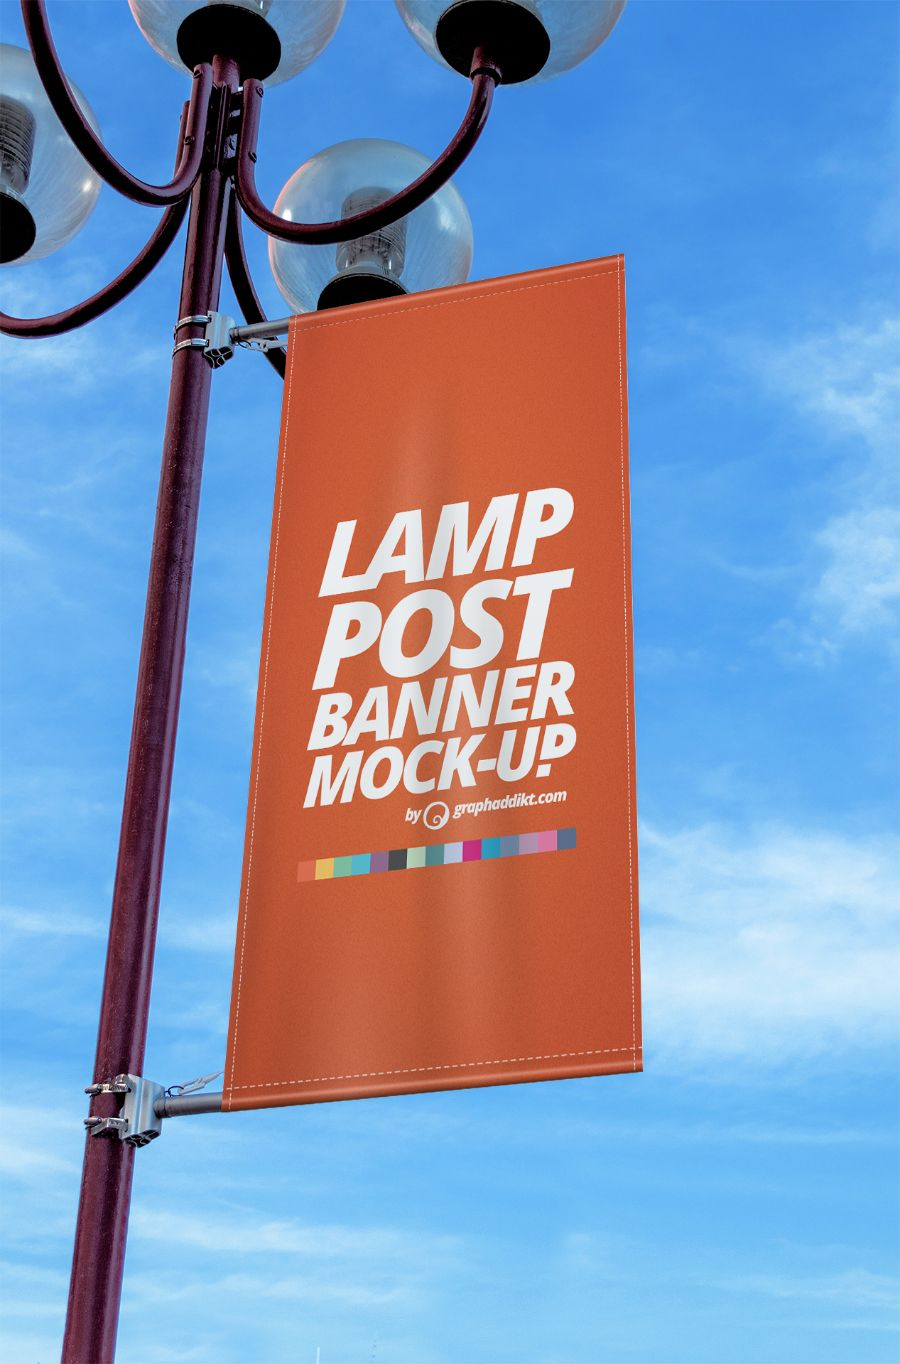 Free Lamp Post Banner Mockup Free Design Resources Photoshop Mockup Free Street Banners Pole Banners